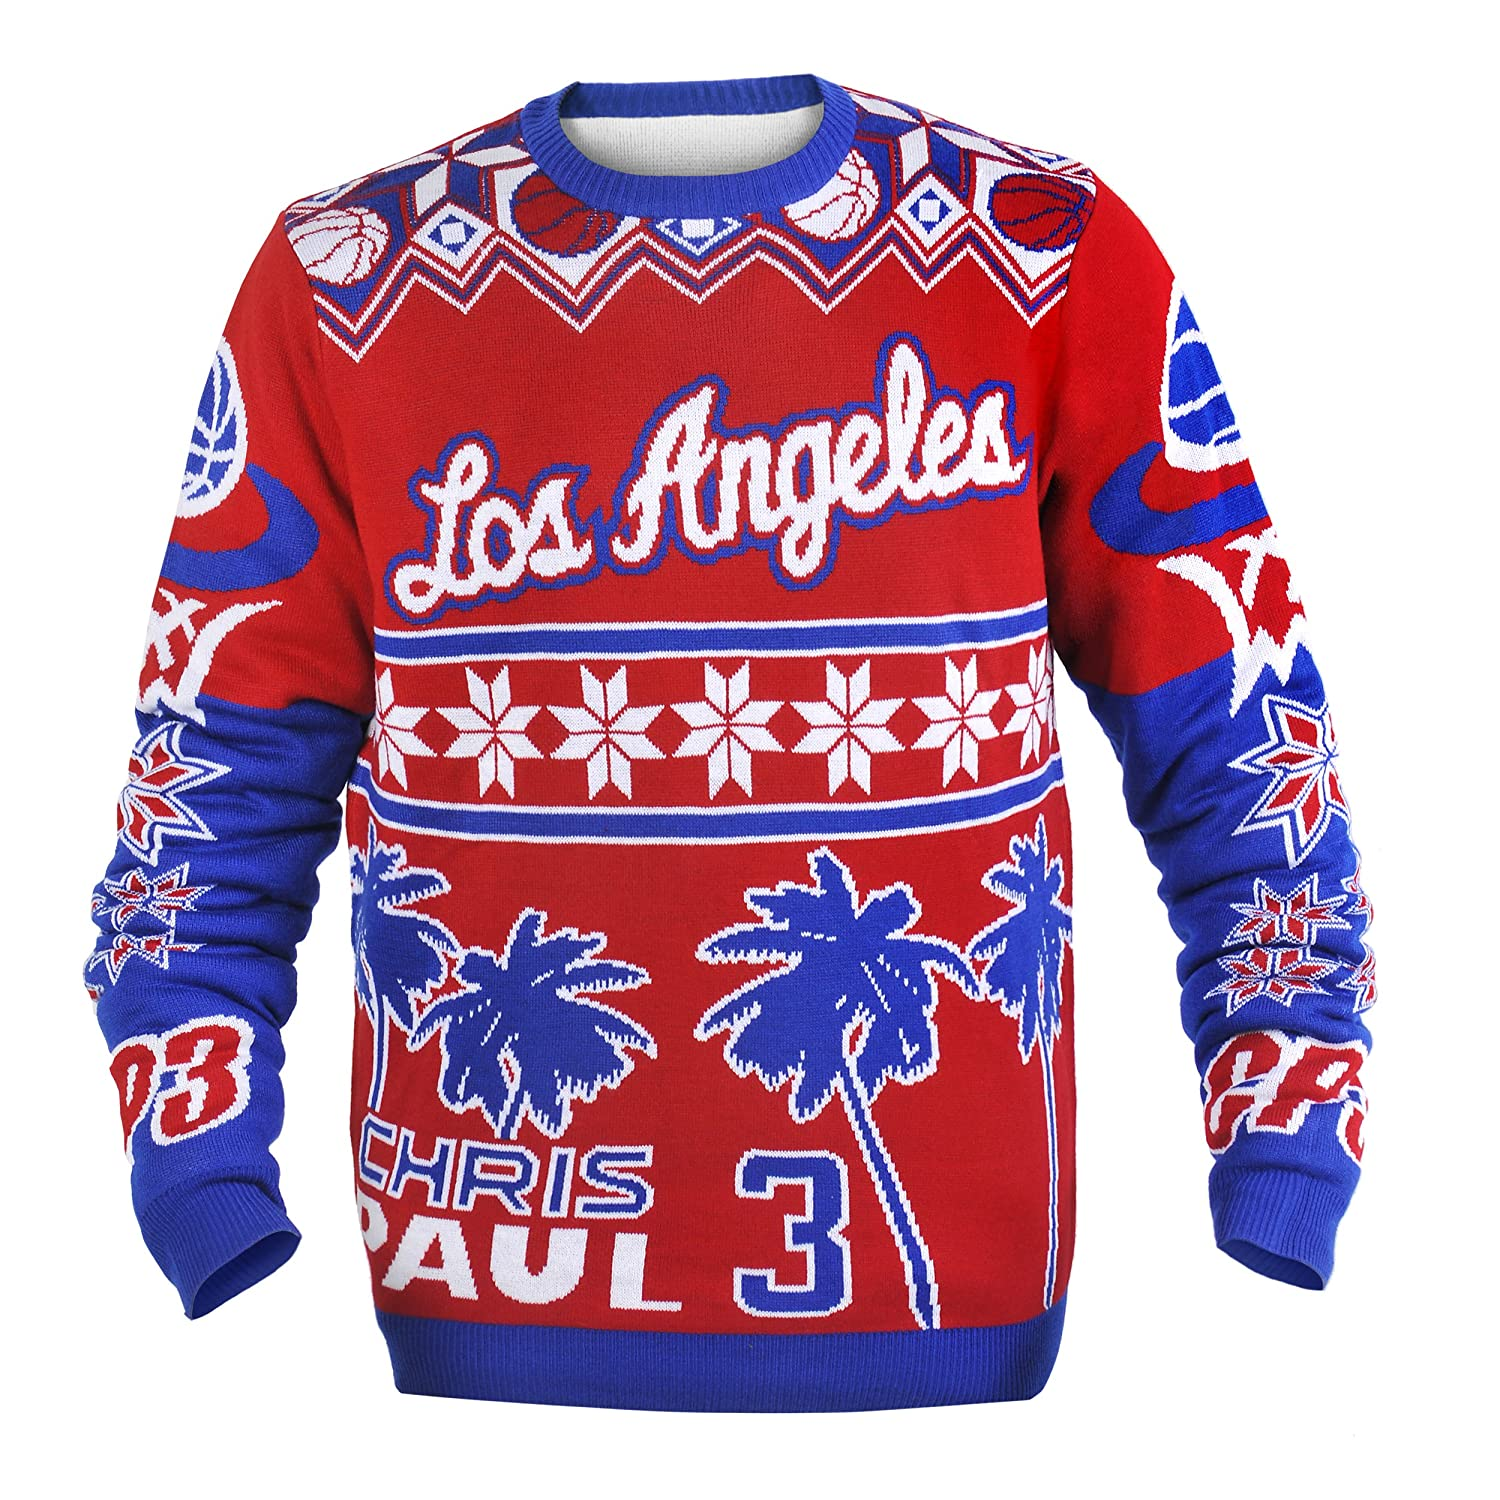 Amazon.com : NBA Player Name and Number Ugly Sweater : Sports ...